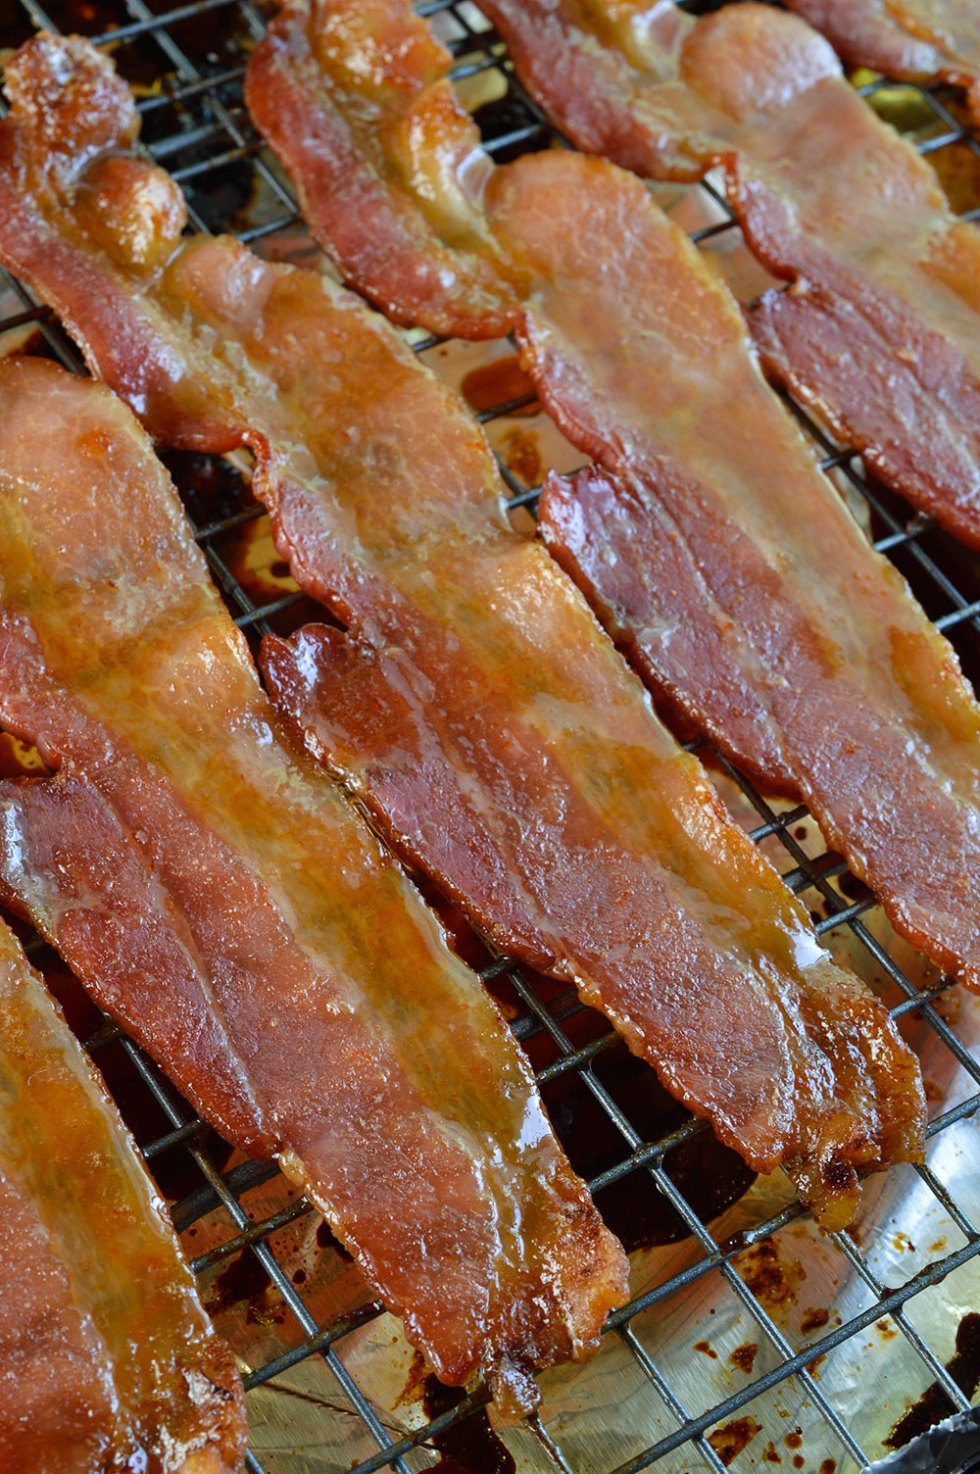 Sriracha and Maple Glazed Oven Baked Bacon - This is a sweet and spicy snack that everyone will love! Great for breakfast too.